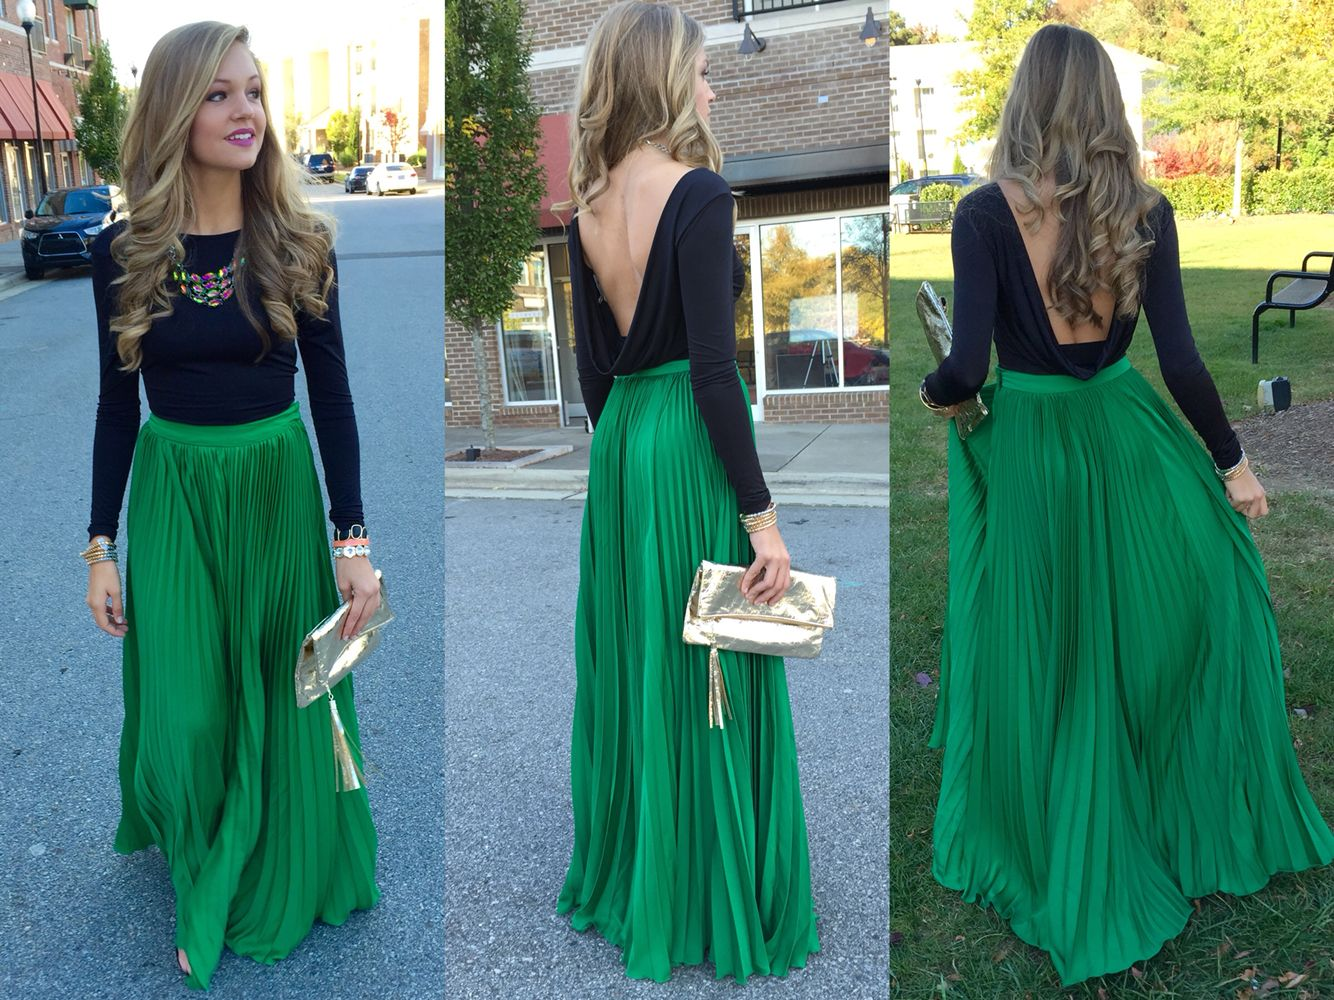 Green pleat maxi skirt #swoonboutique | SWOON Swag. | Pinterest ...